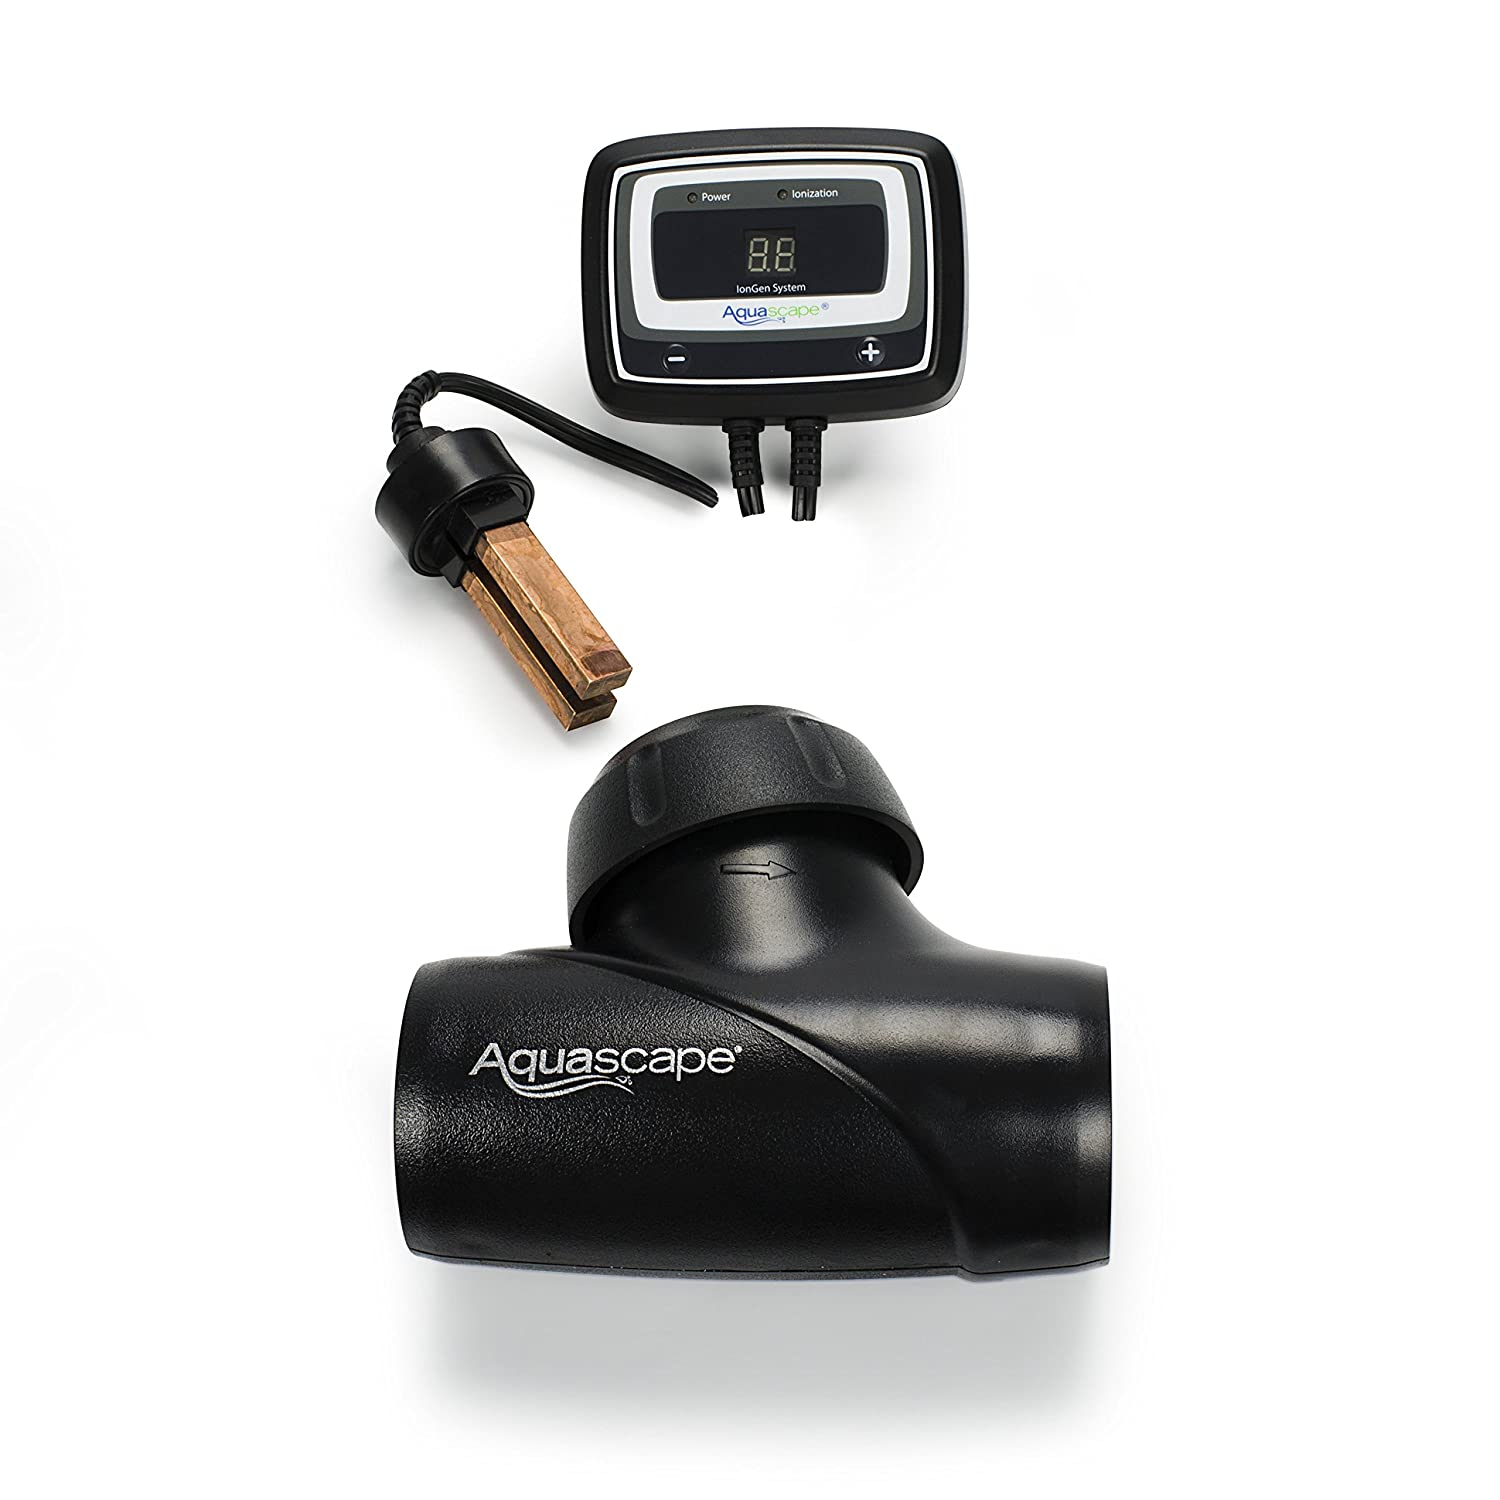 Aquascape IonGen System G2 Electronic Algae Controller for Pond, Garden, and Waterfall Features | 95027